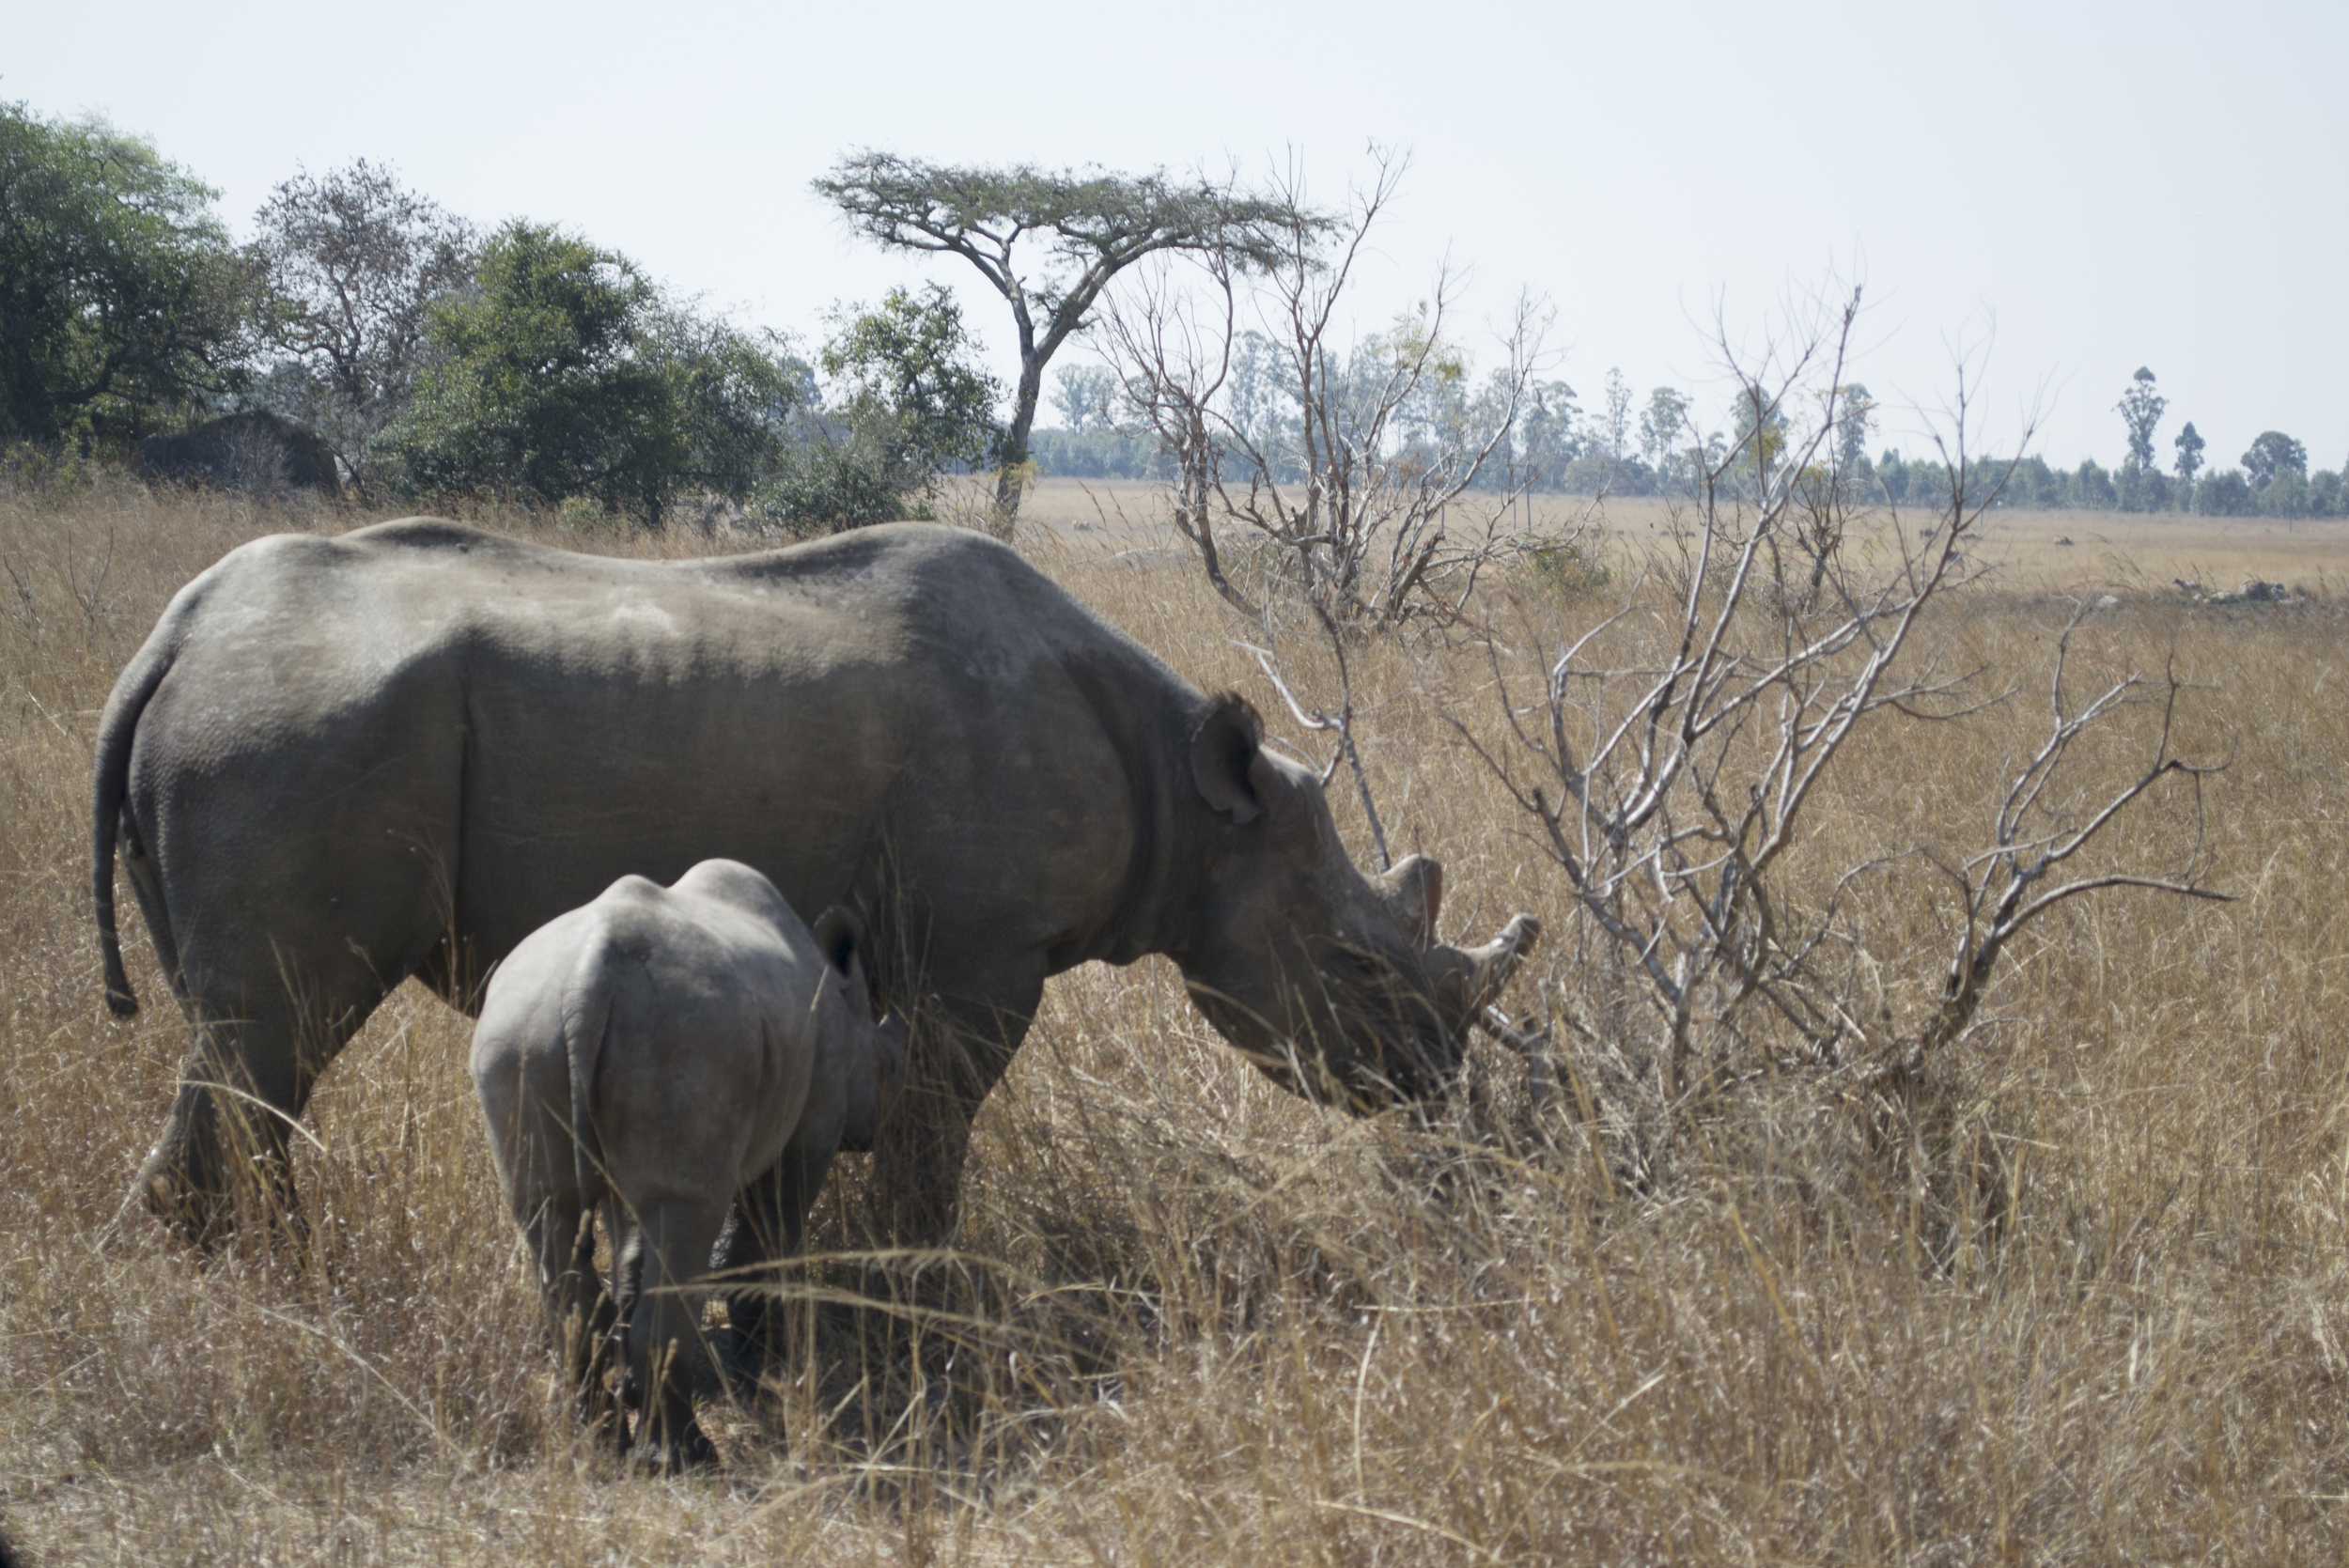 I had the opportunity to visit Imire rhino reserve outside of Marondera-such a treat!